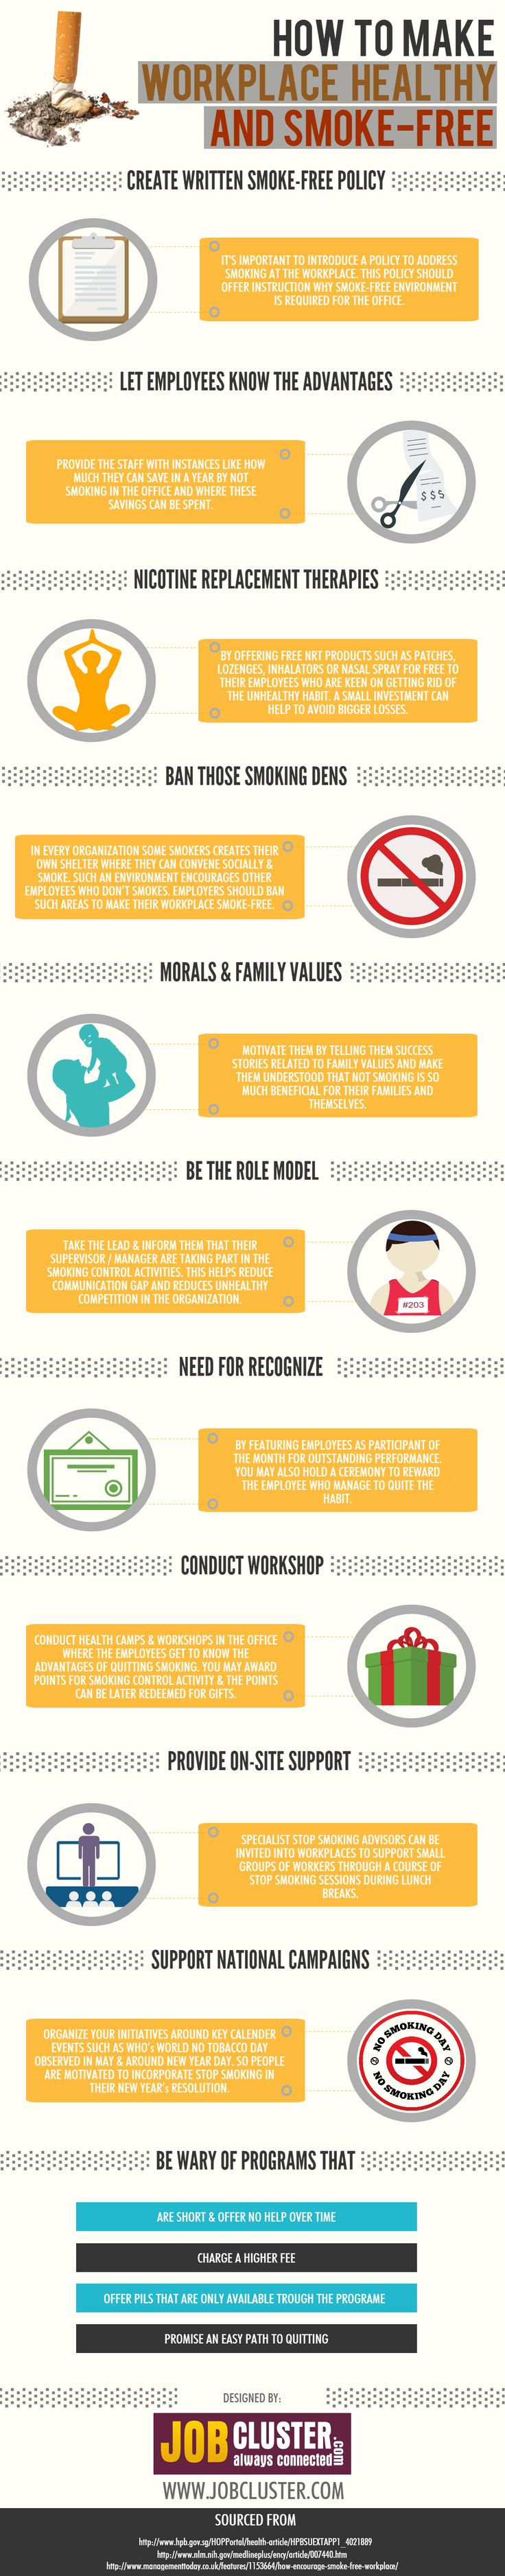 How To Make Workplace Healthy And Smoke Free #infographic